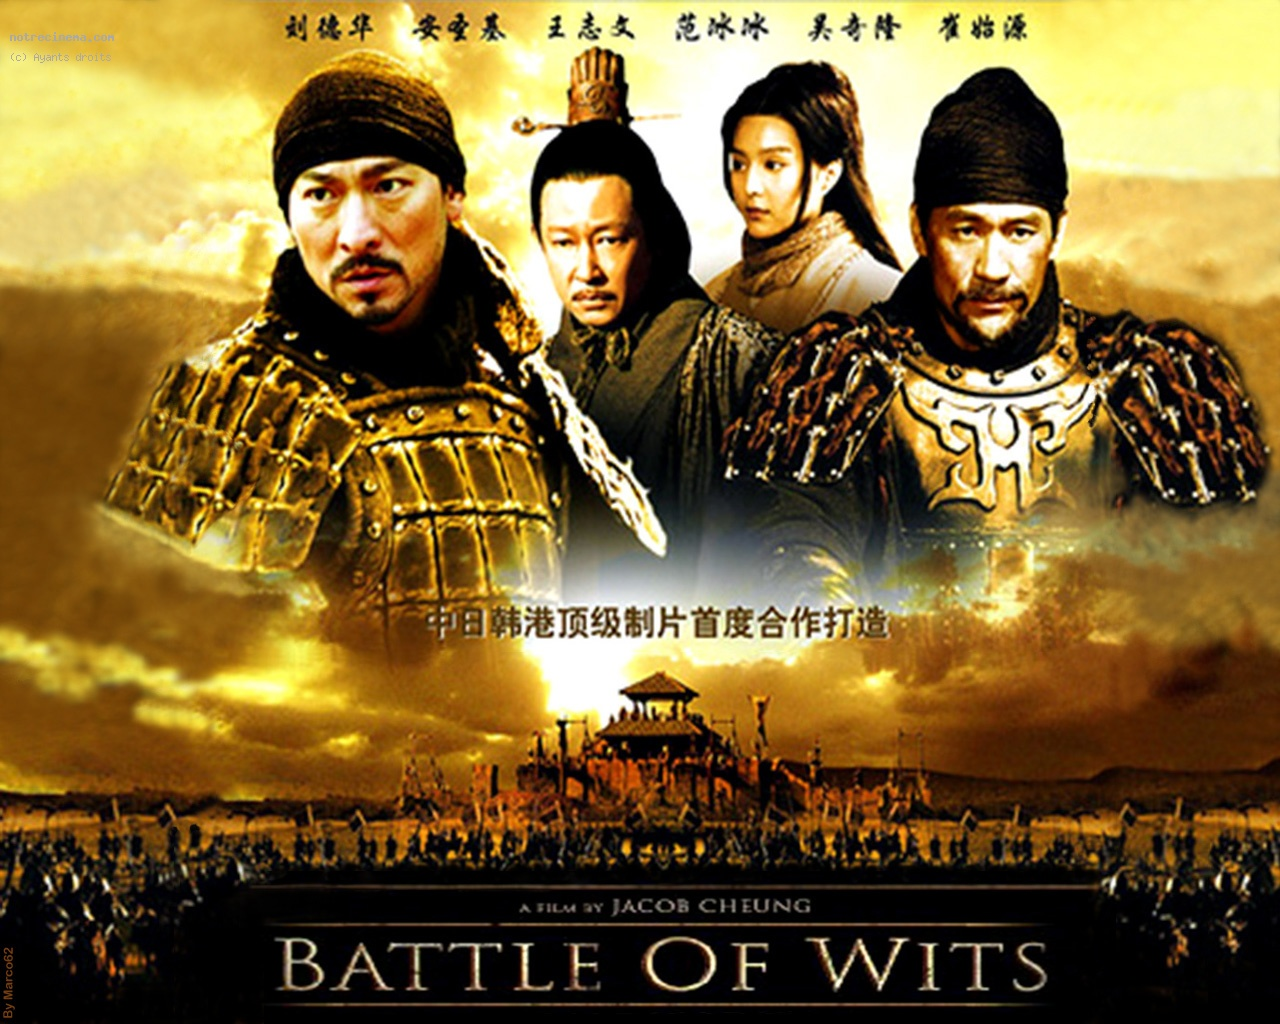 http://s9.picofile.com/file/8275070326/Battle_of_the_Warriors_Poster2_sjbluesubs_.jpg